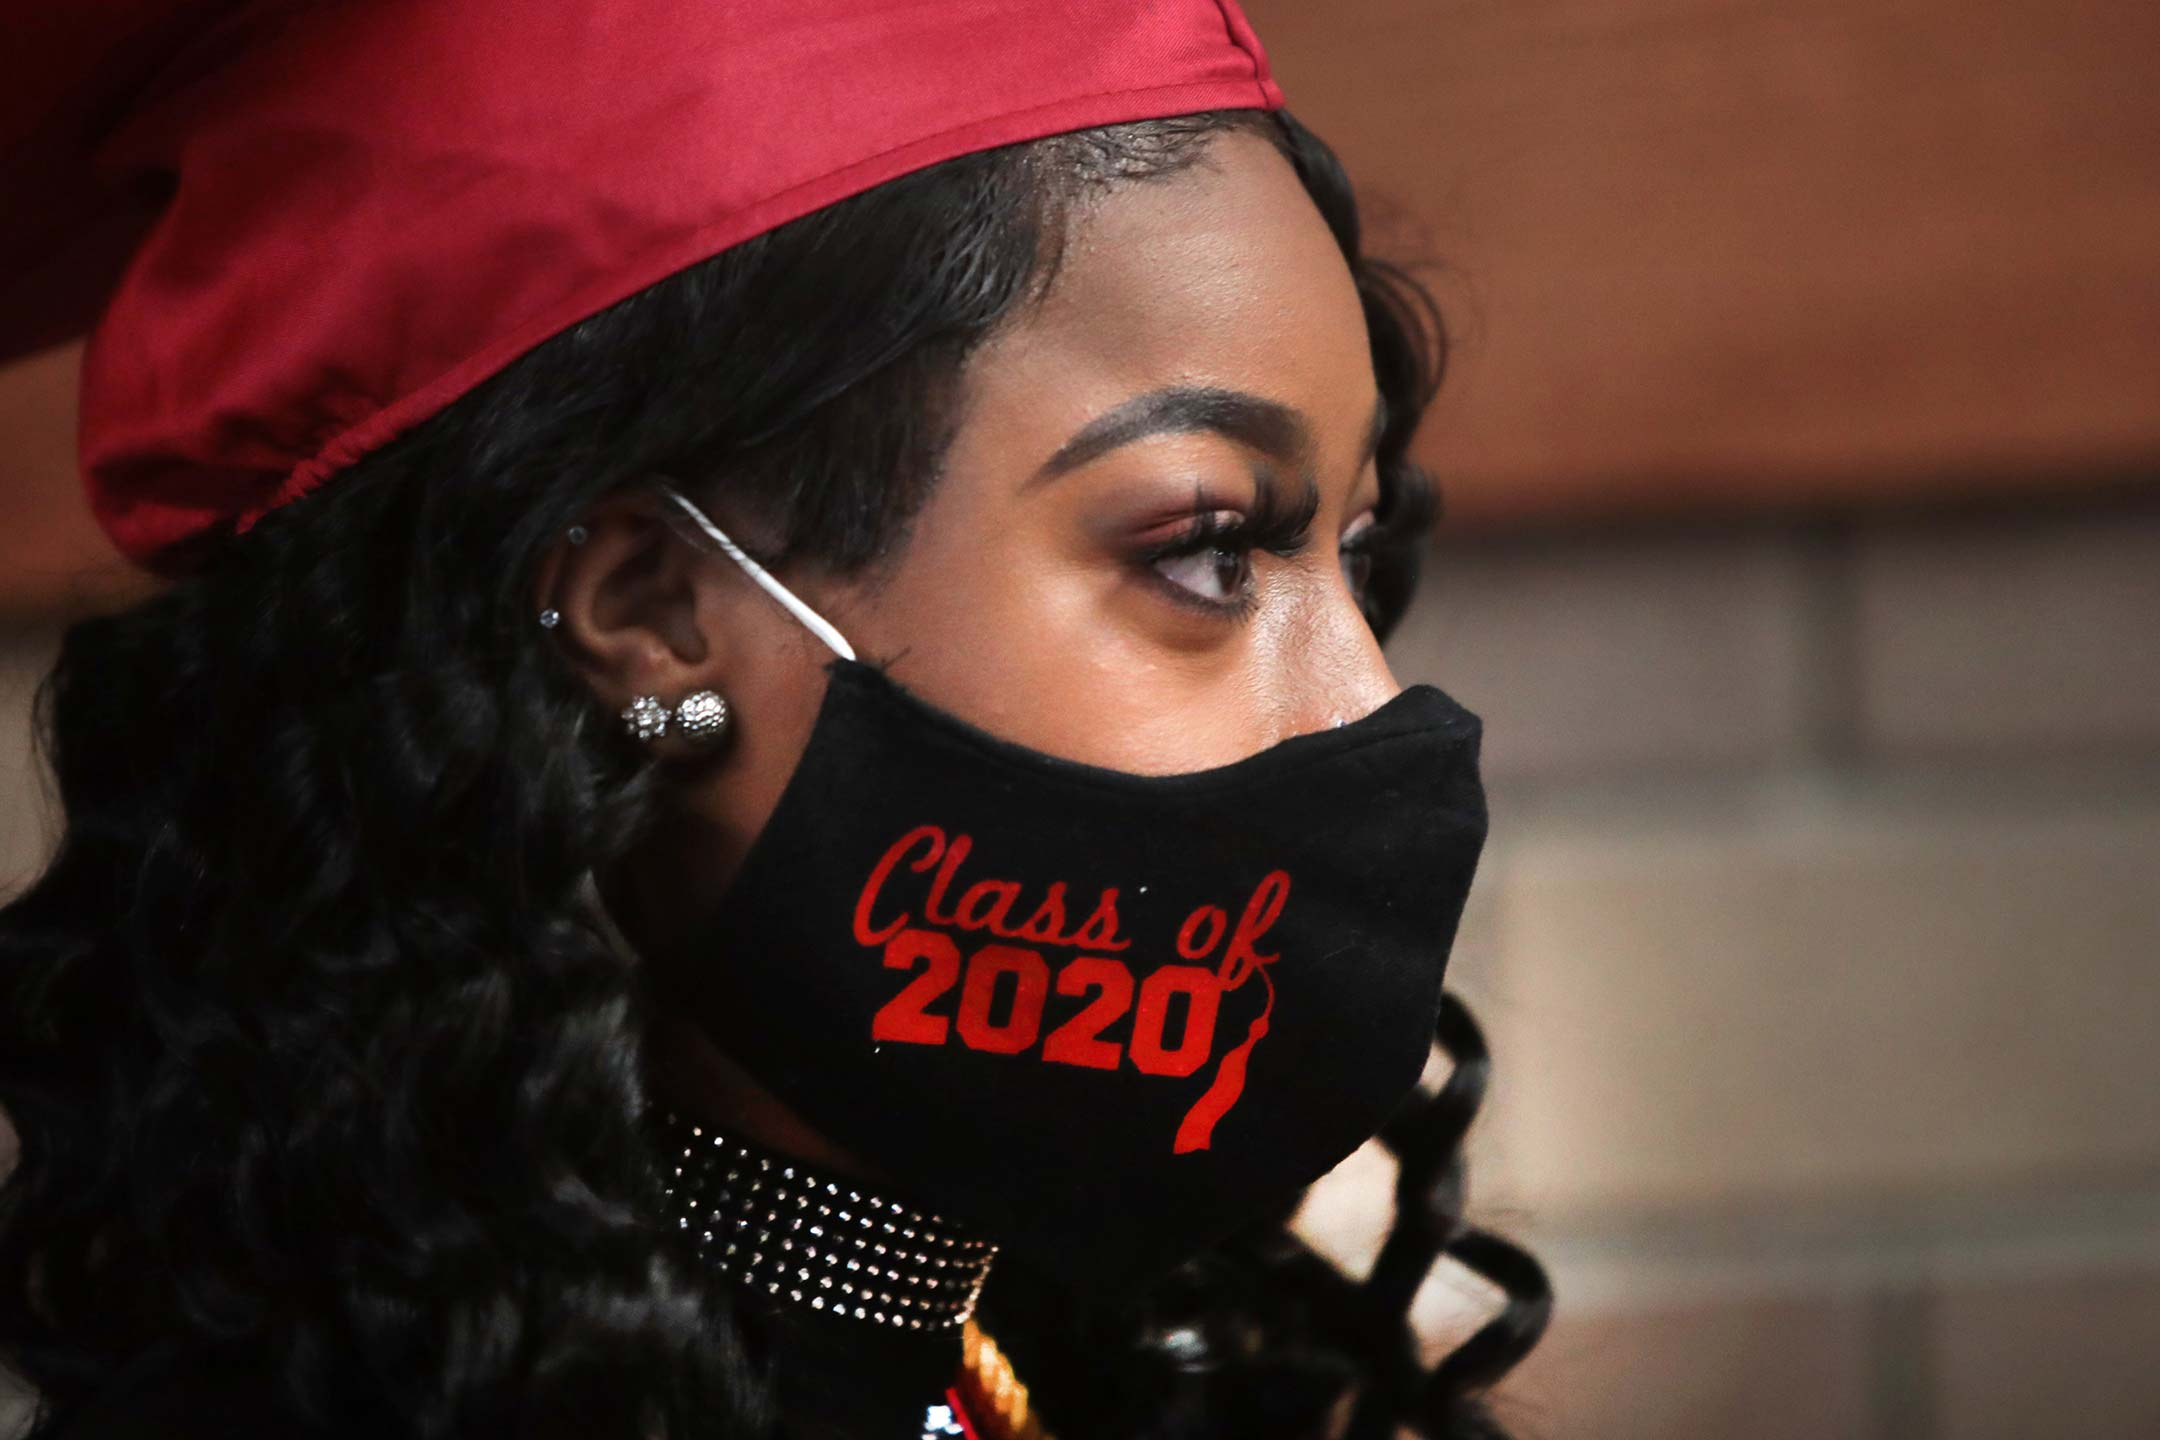 a young black woman, shown in profile, wears red graduation regalia and a black face mask with class of 2020 written on it